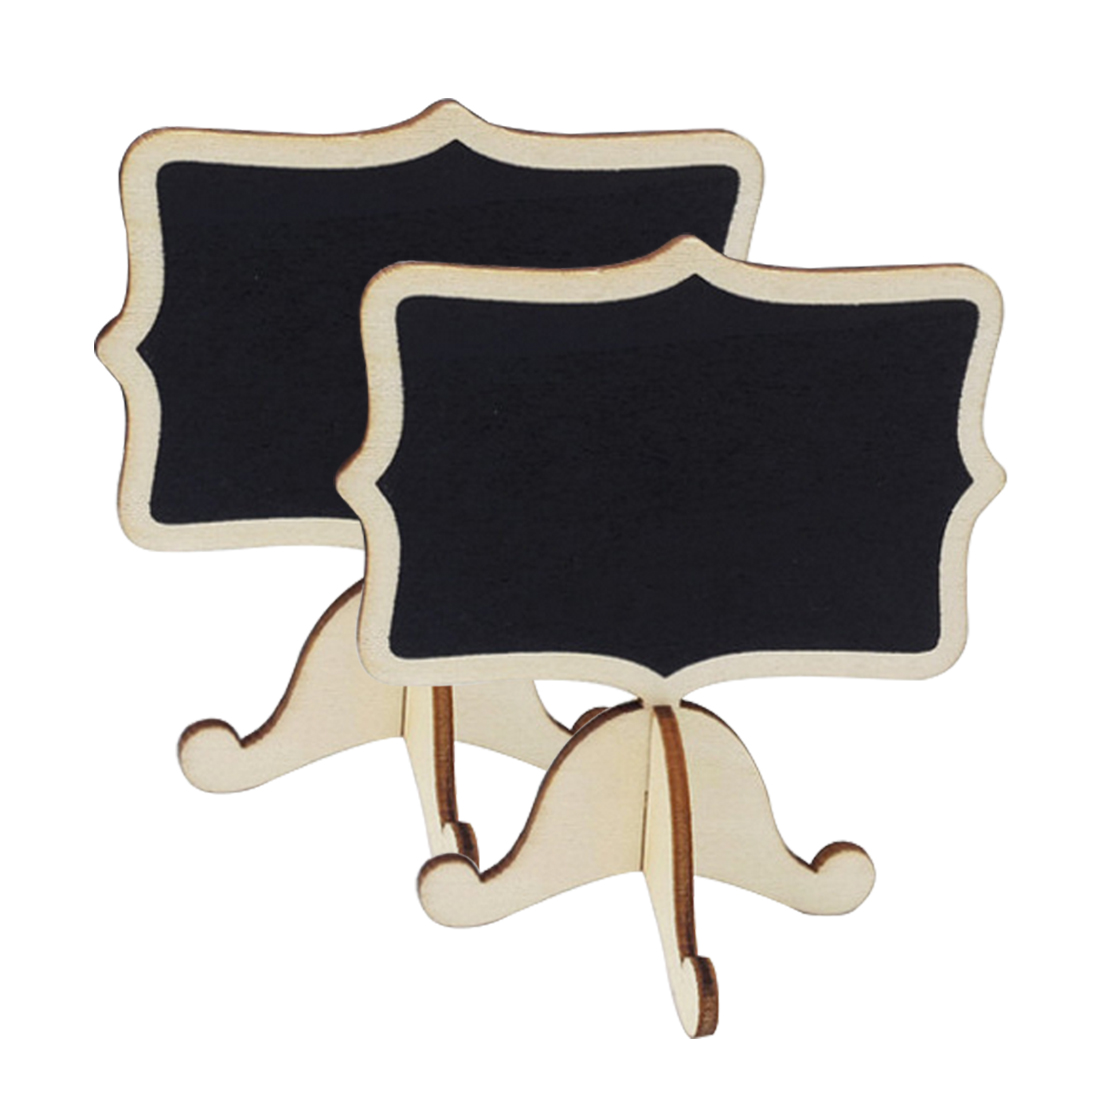 Good Sale Mini Lace Blackboard Chalkboard Wooden Blackboard Price Stand For New Year Party Christmas Wedding Decoration